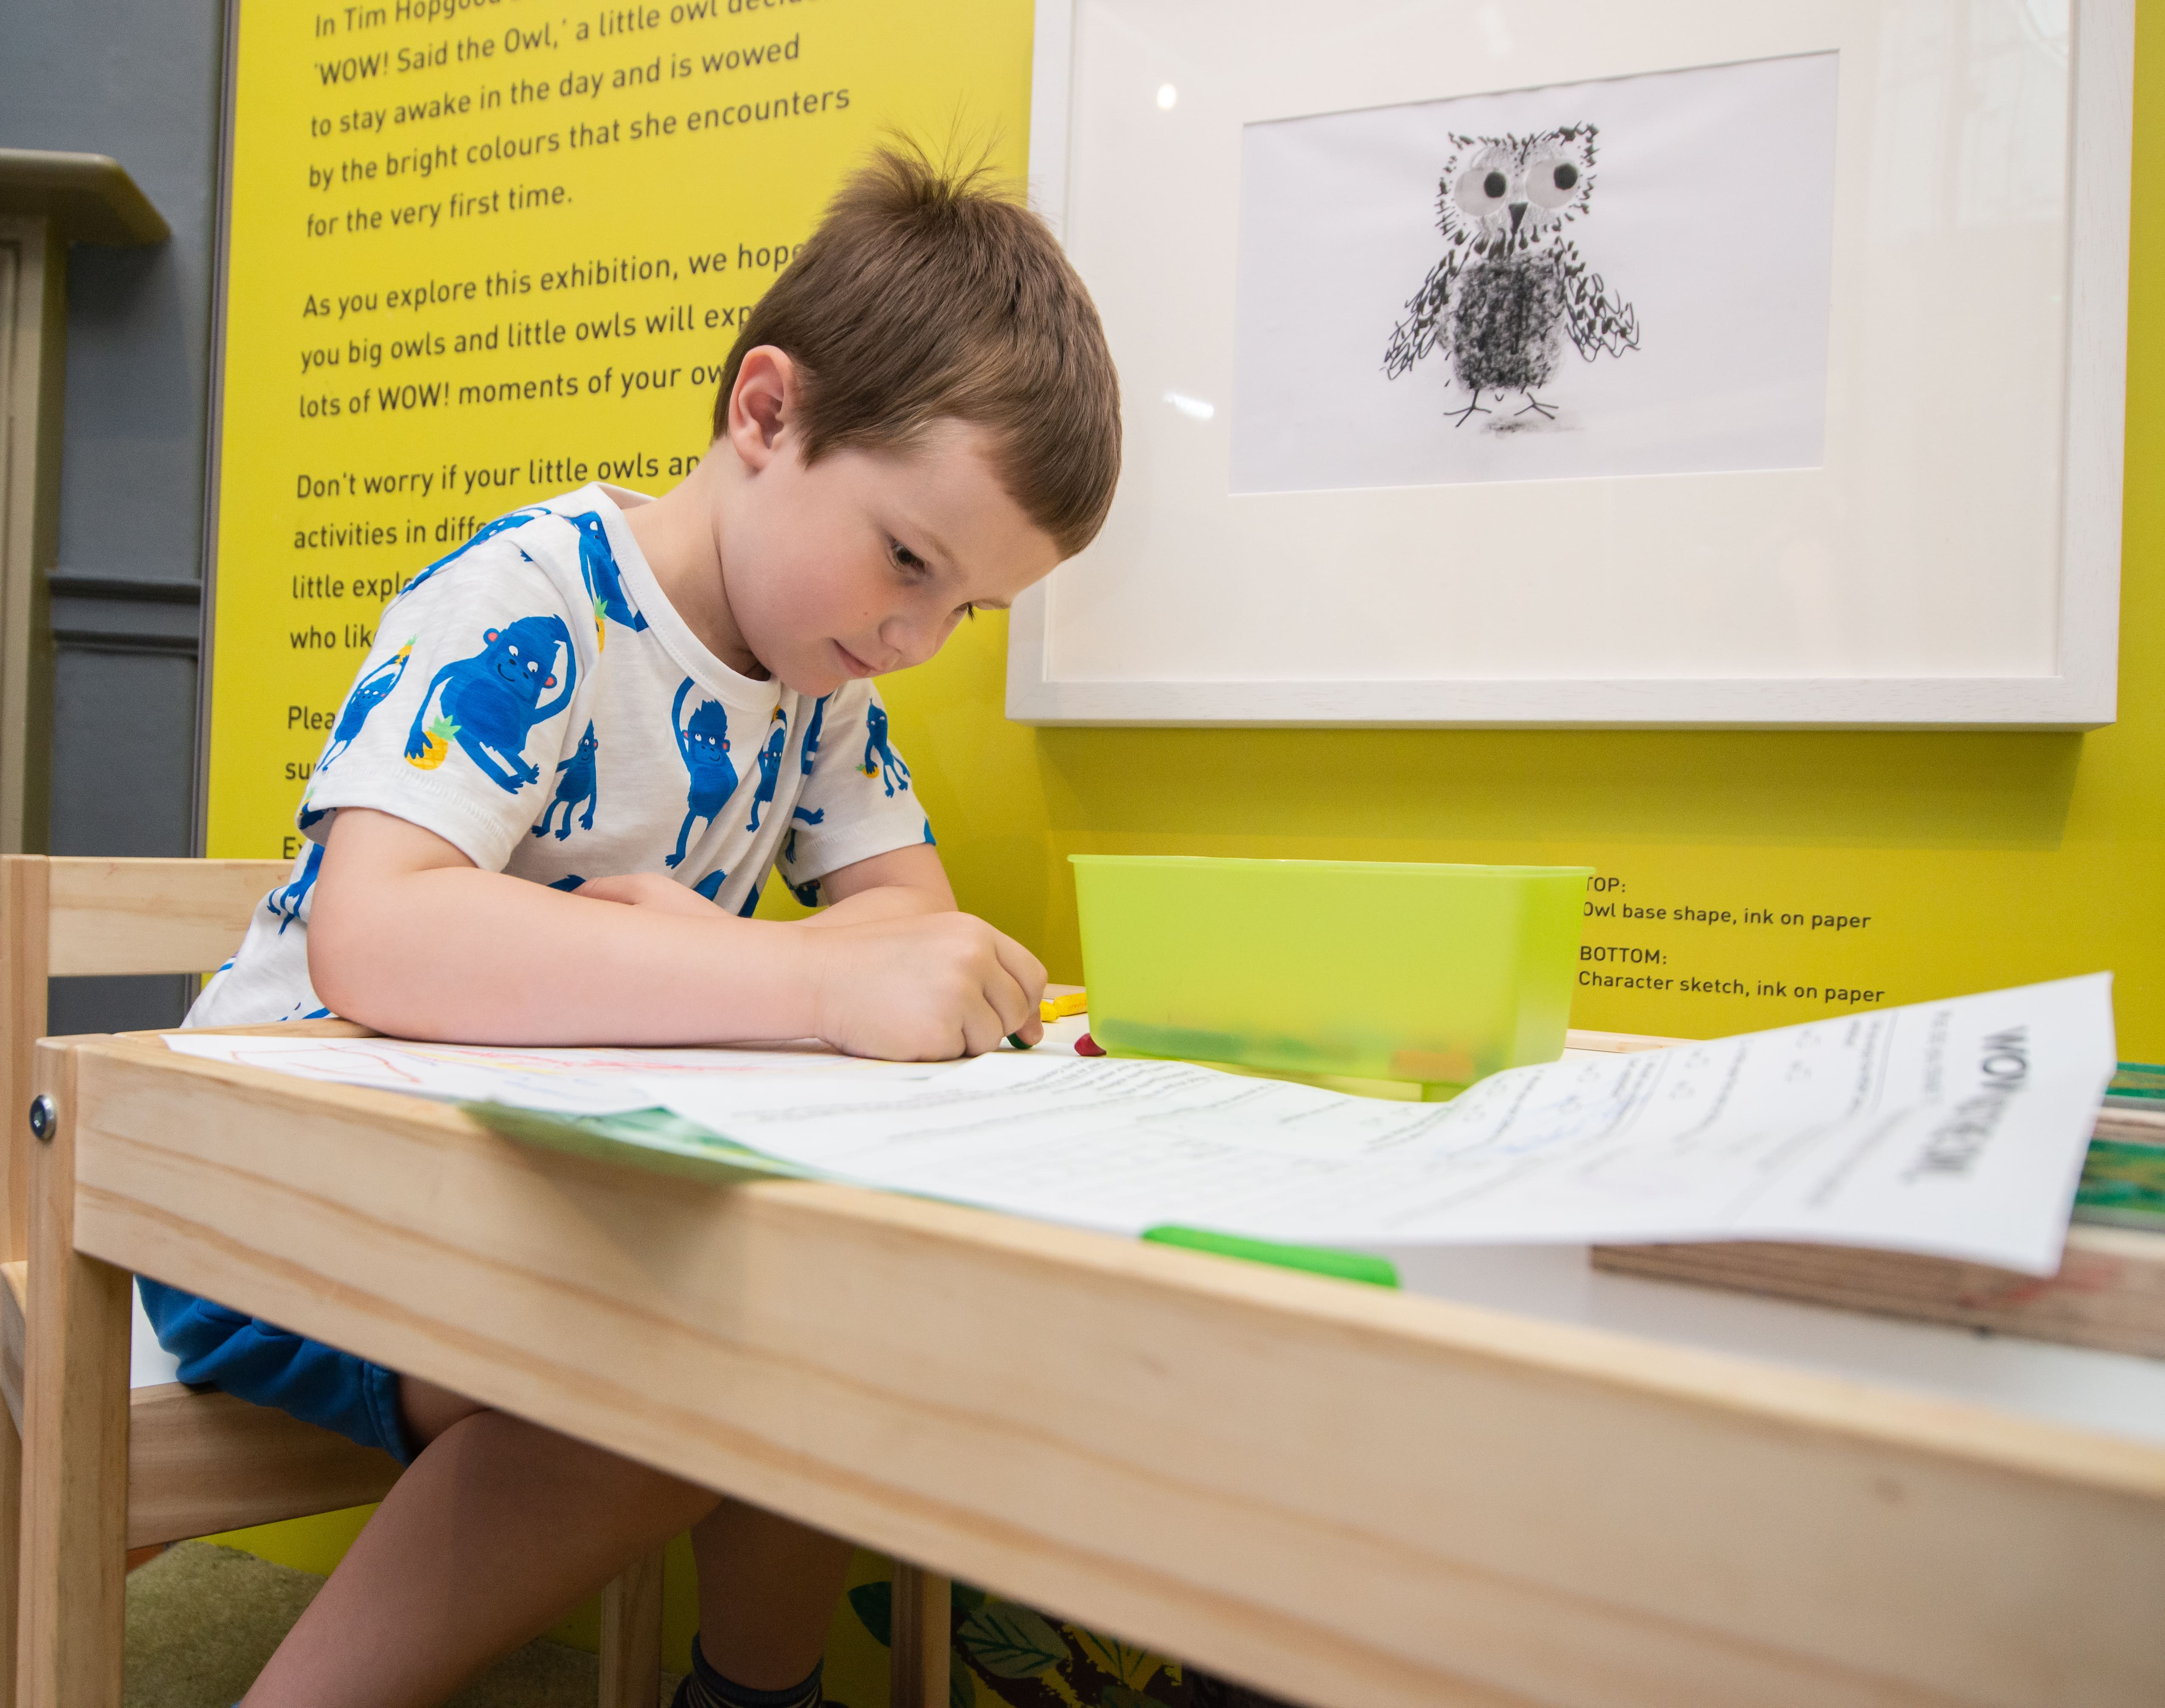 A boy sits drawing at a table. He is wearing a blue and white tshirt. There is a picture of an owl on the wall next to him. A darts in Doncaster project